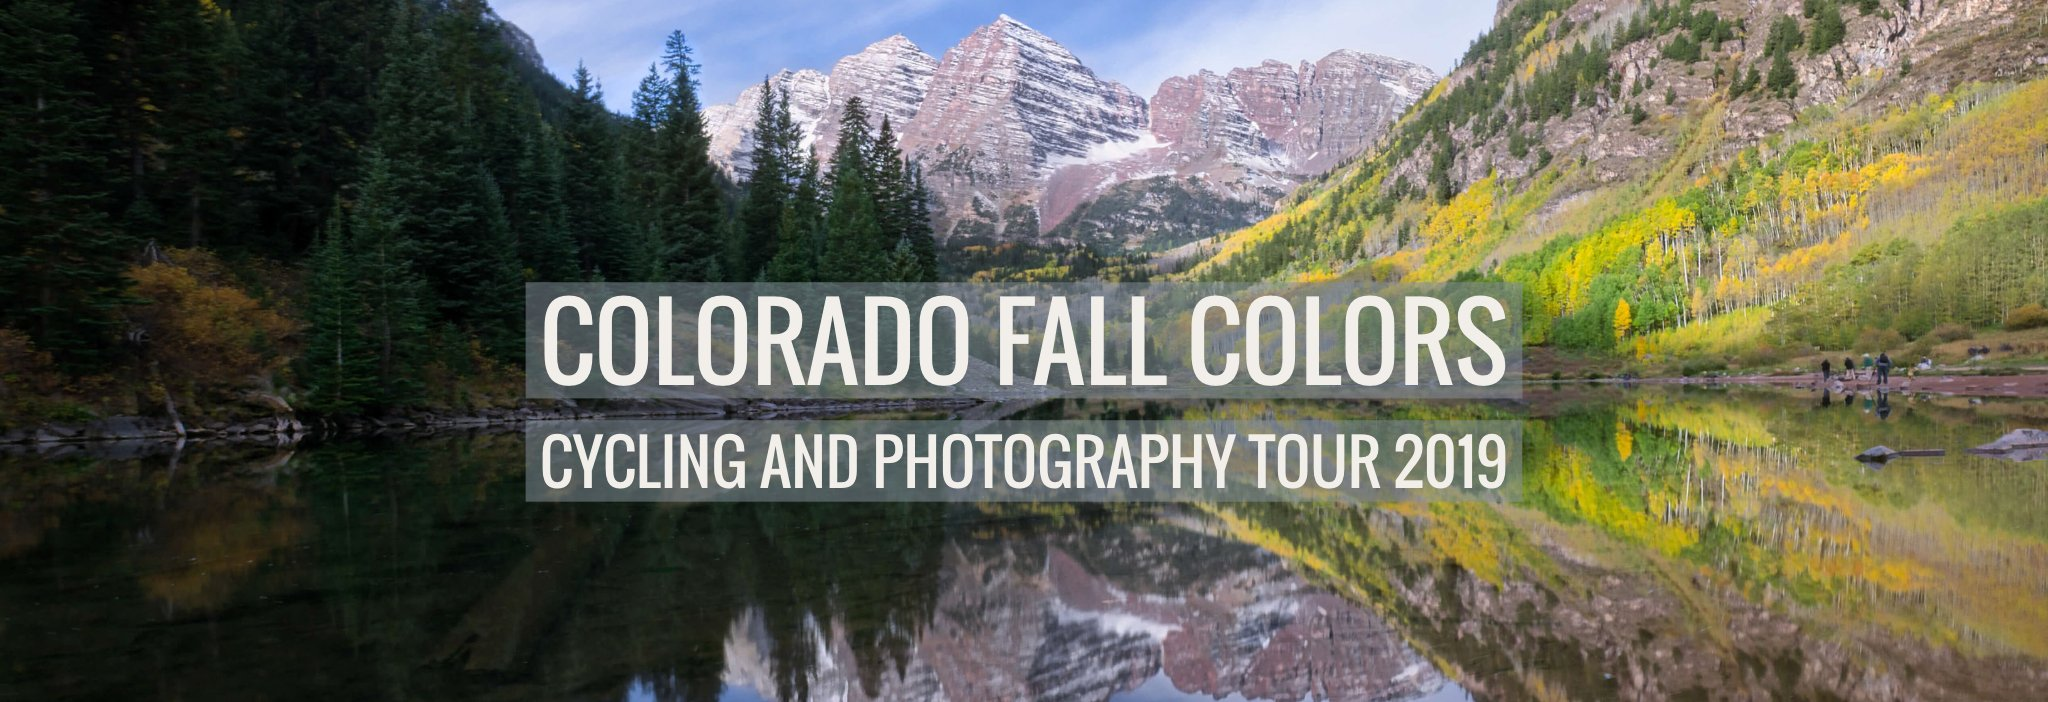 Colorado Fall Colors Cycling And Photography Tour